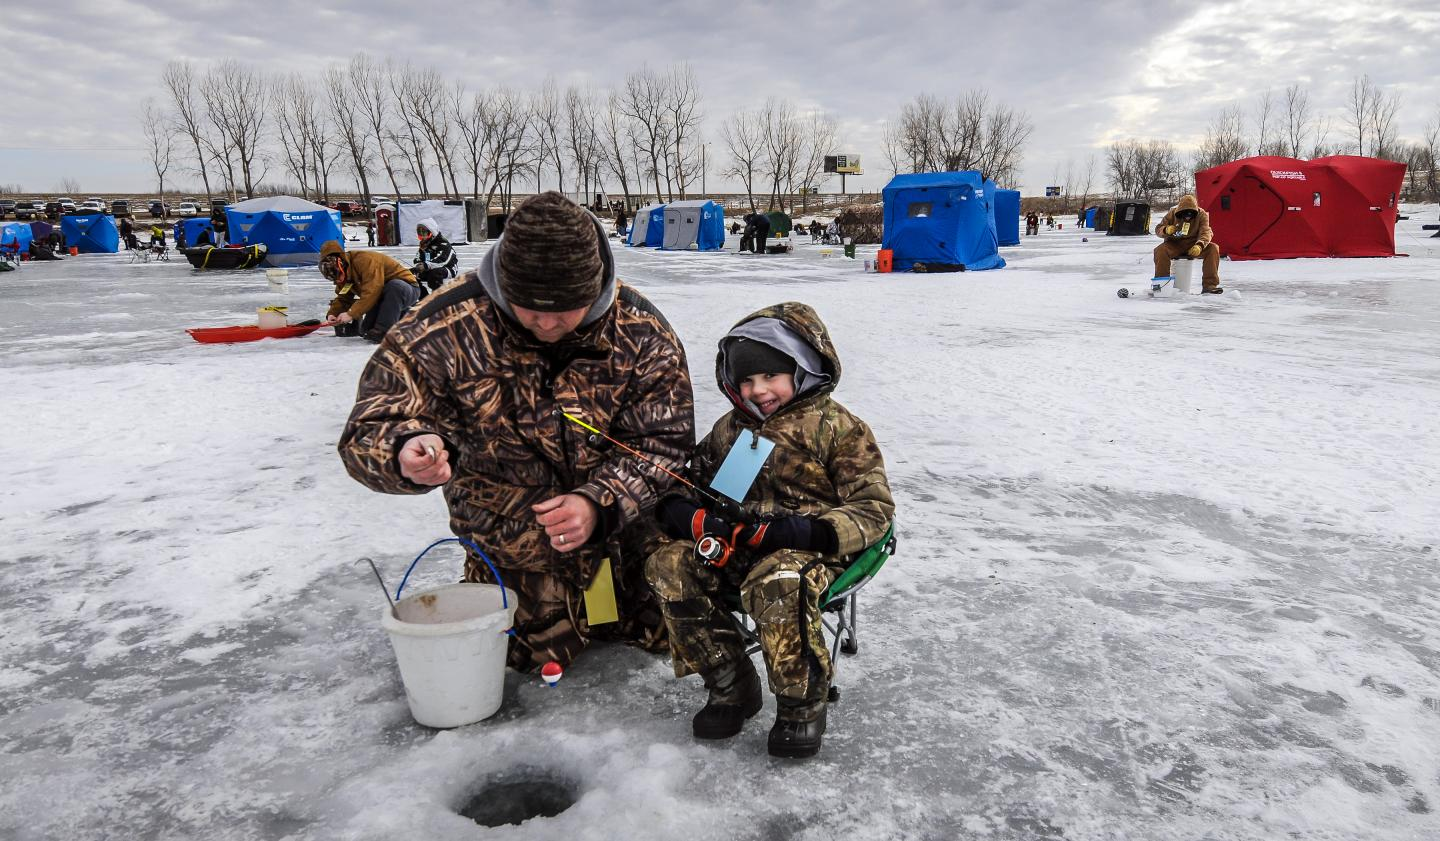 Fishing on frozen waters south dakota places to see for South dakota ice fishing guides